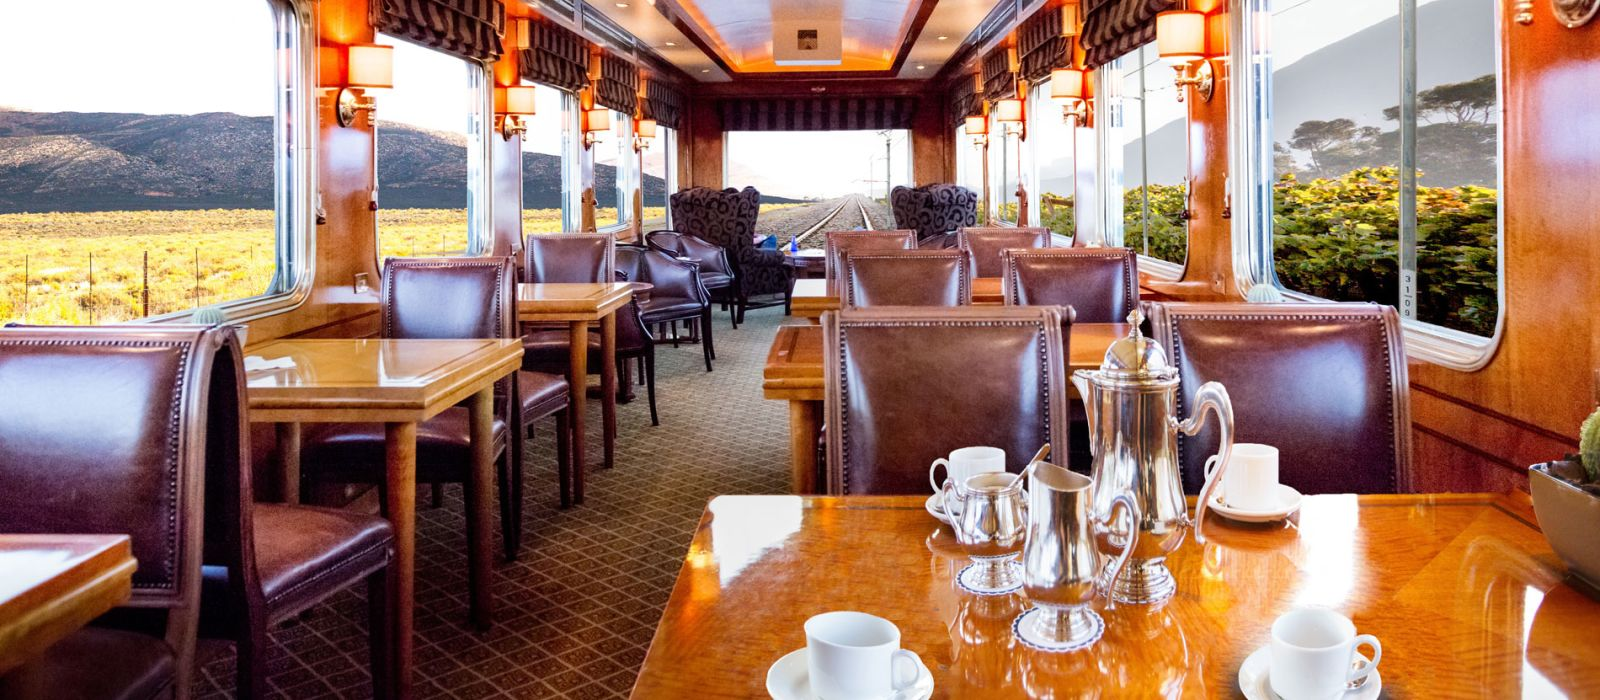 Hotel Blue Train (Cape Town – Pretoria) South Africa